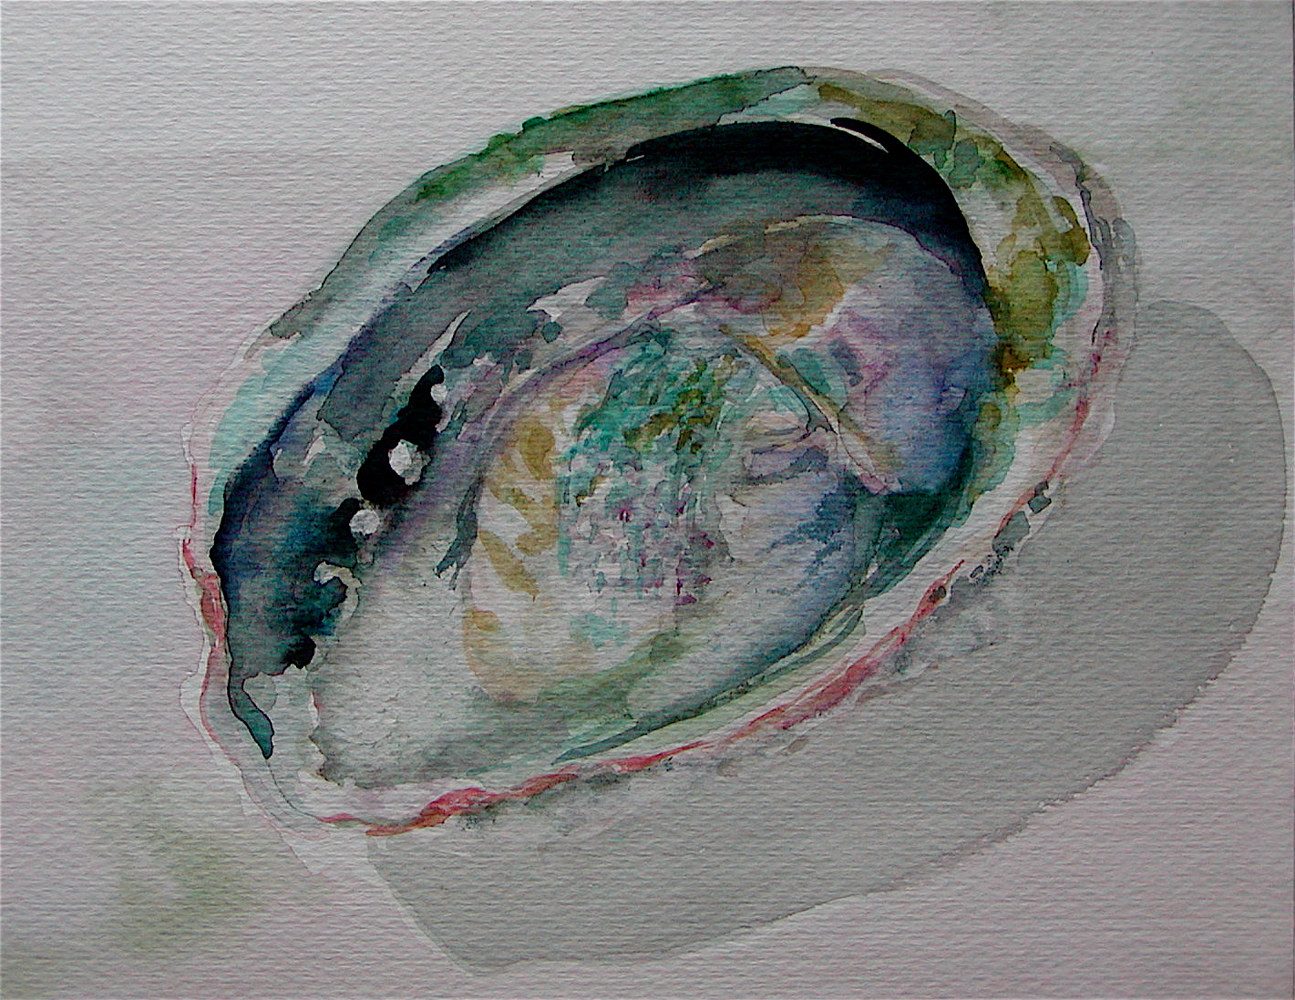 Watercolor Abalone by Victoria Avila